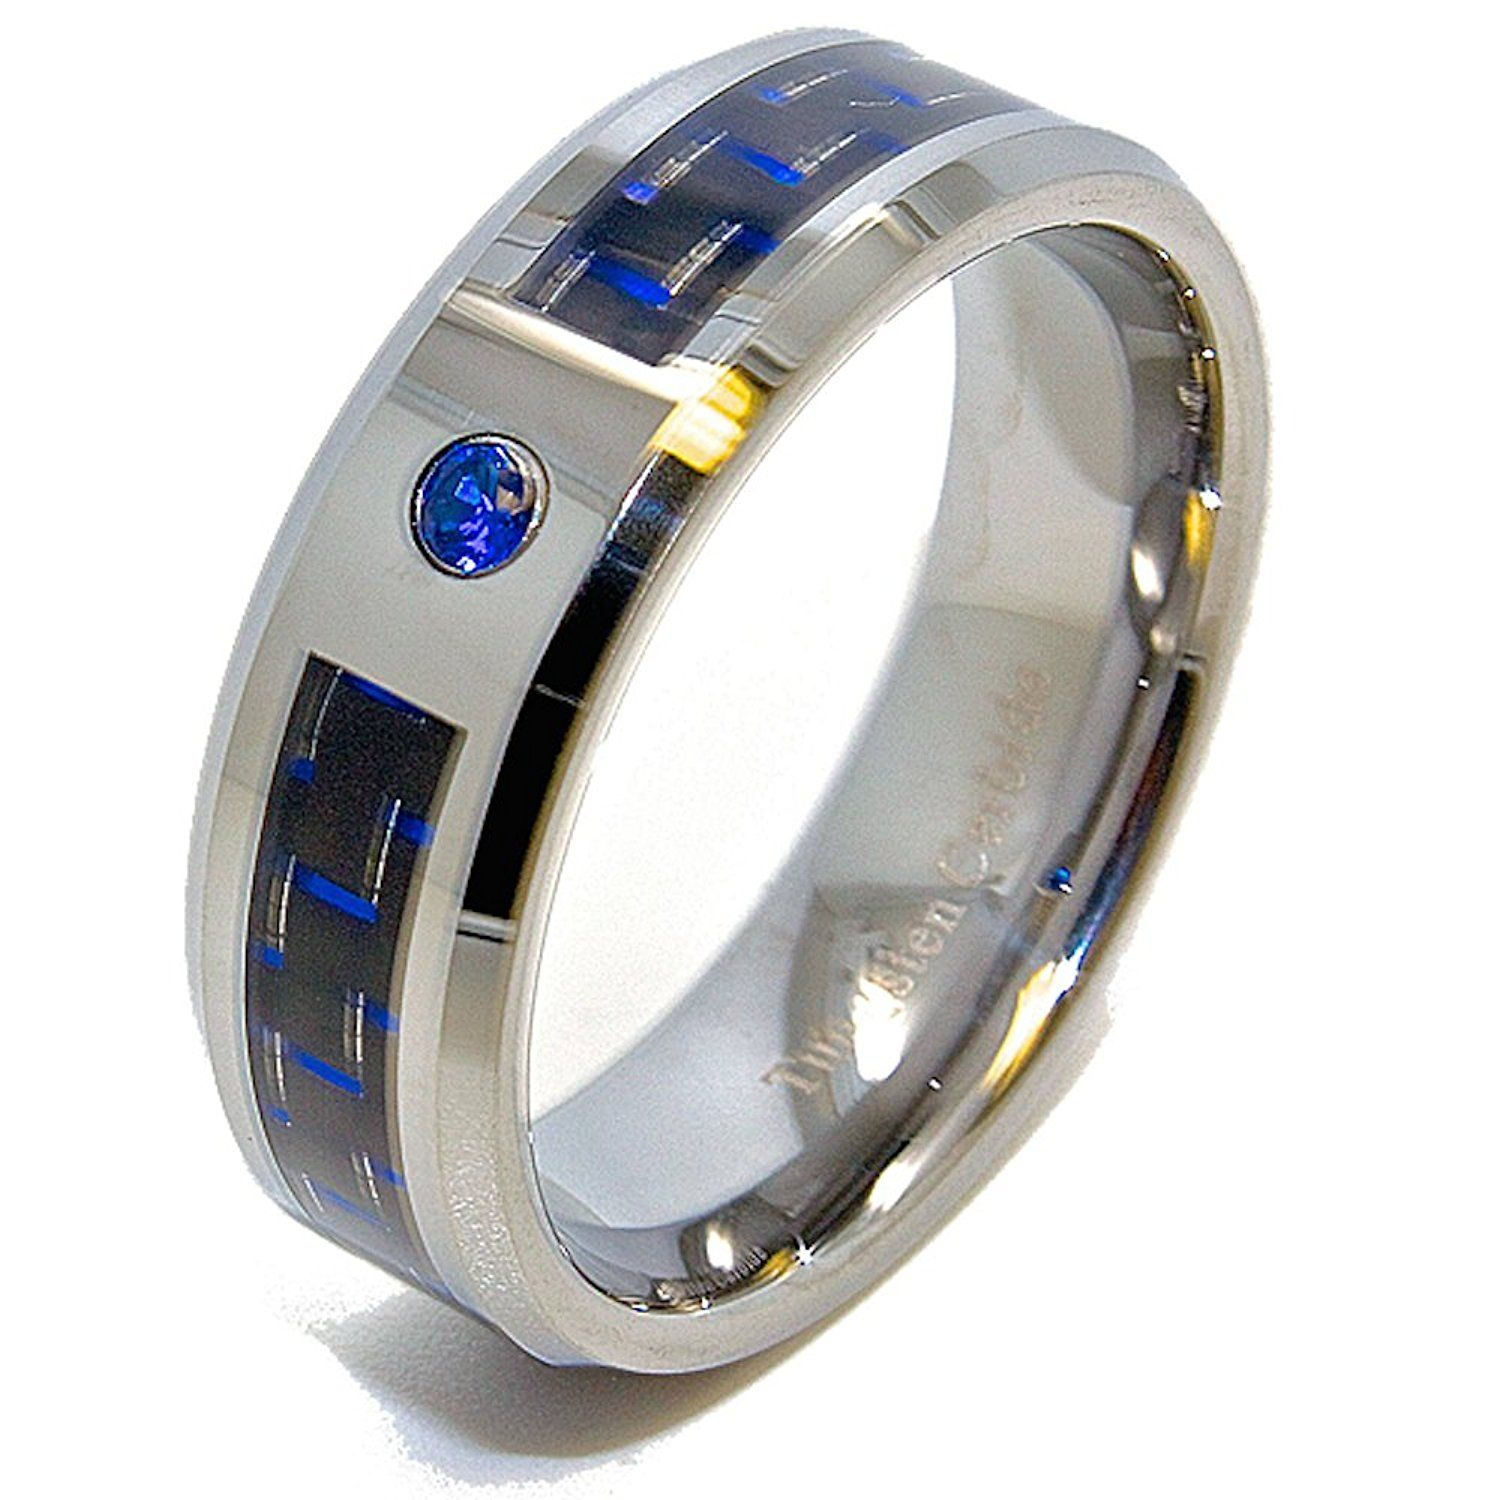 jewellery blue jewelry co wedding bands tungsten ring silvering celtic uk amazon dragon dp carbide queenwish mens